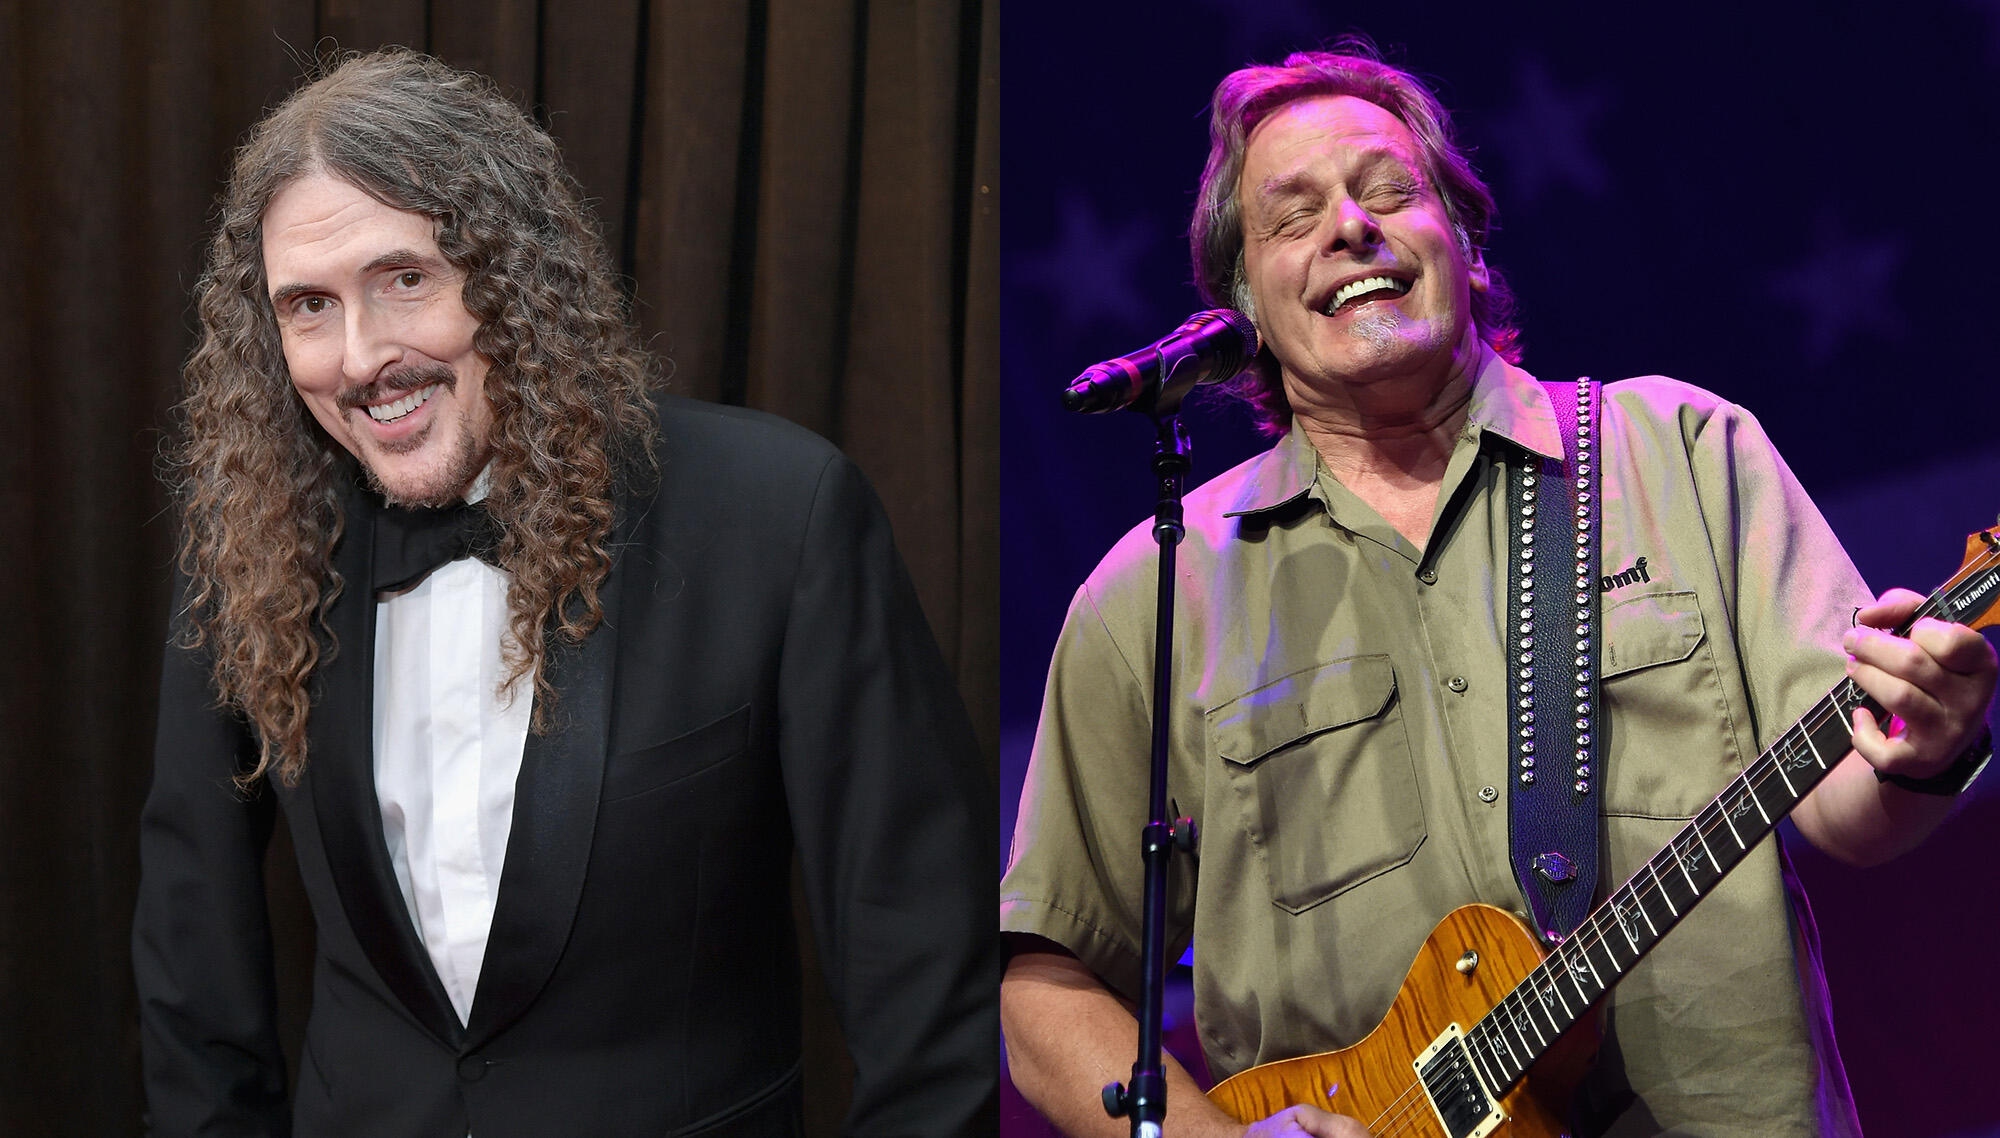 'Weird Al' Yankovic Guest Stars As Ted Nugent In Return Of 'Reno 911'